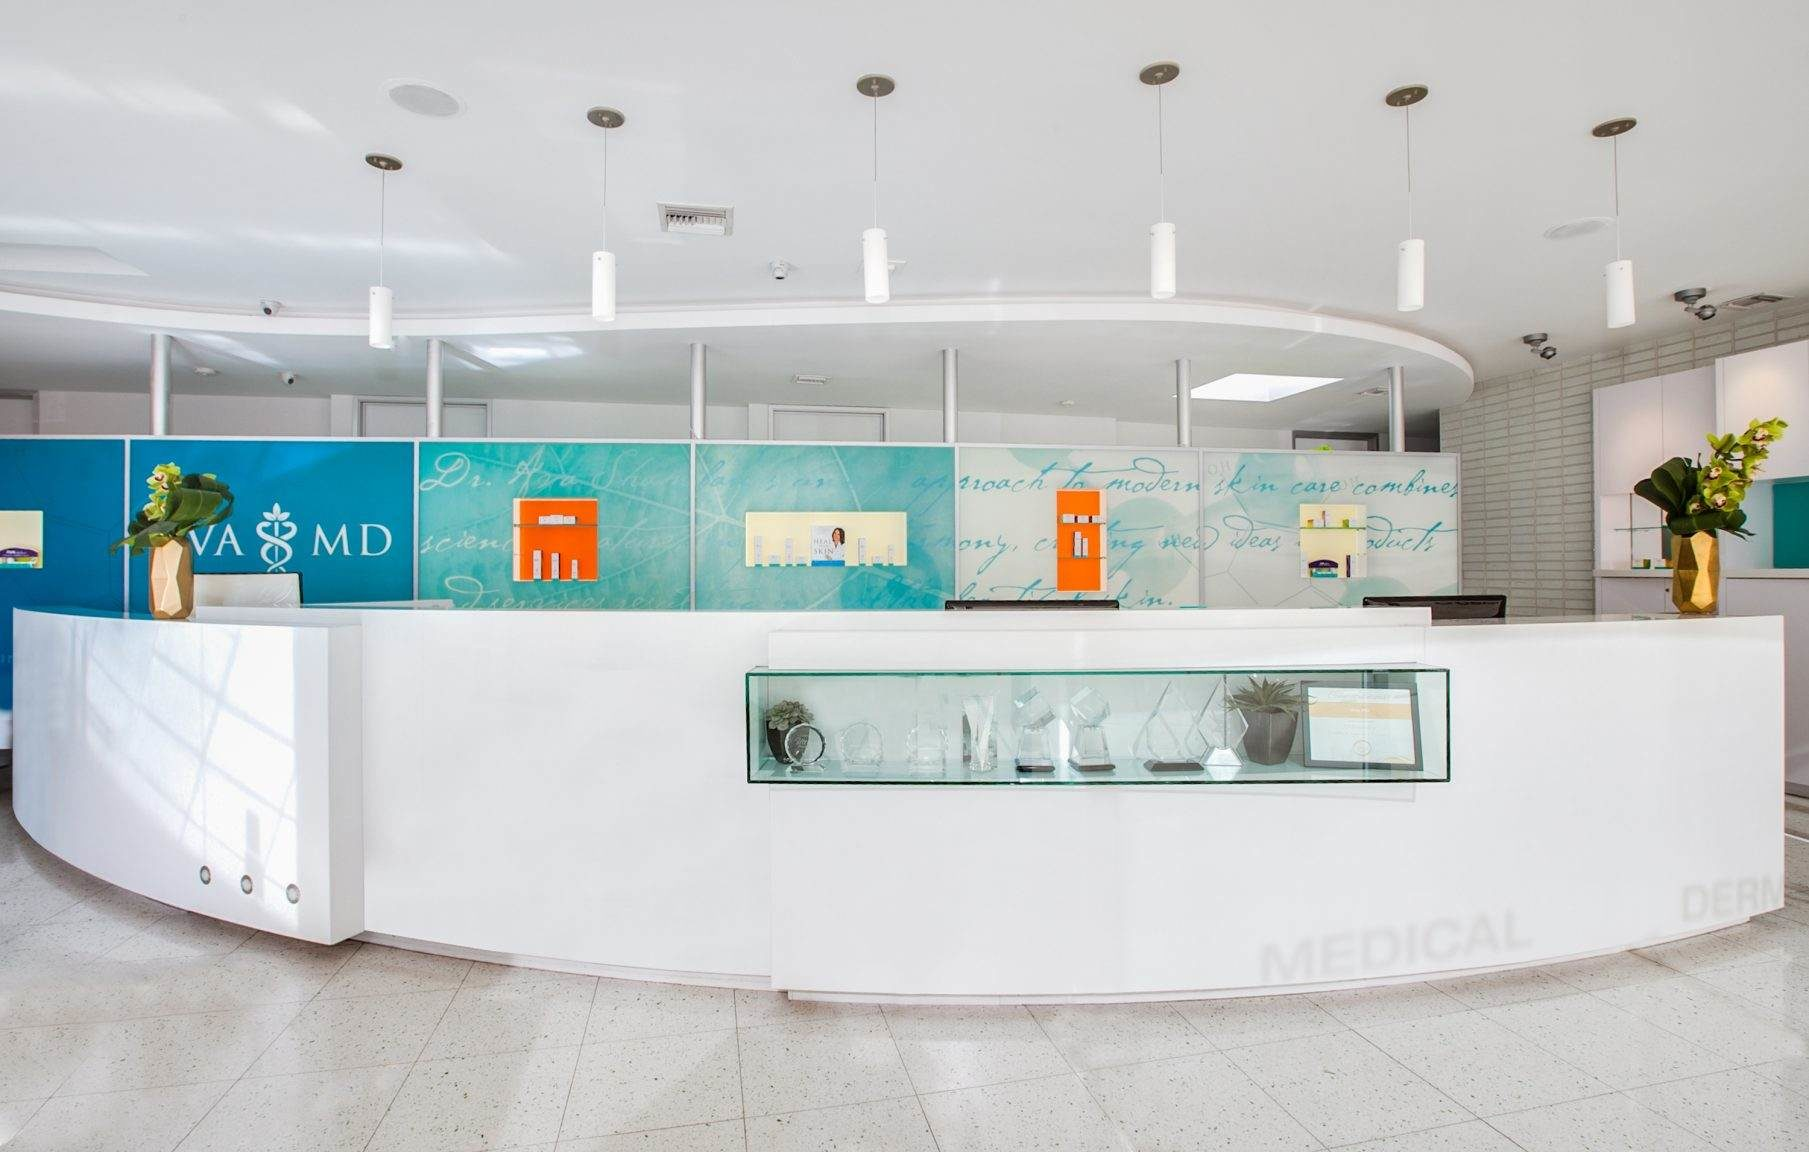 ava md office front desk